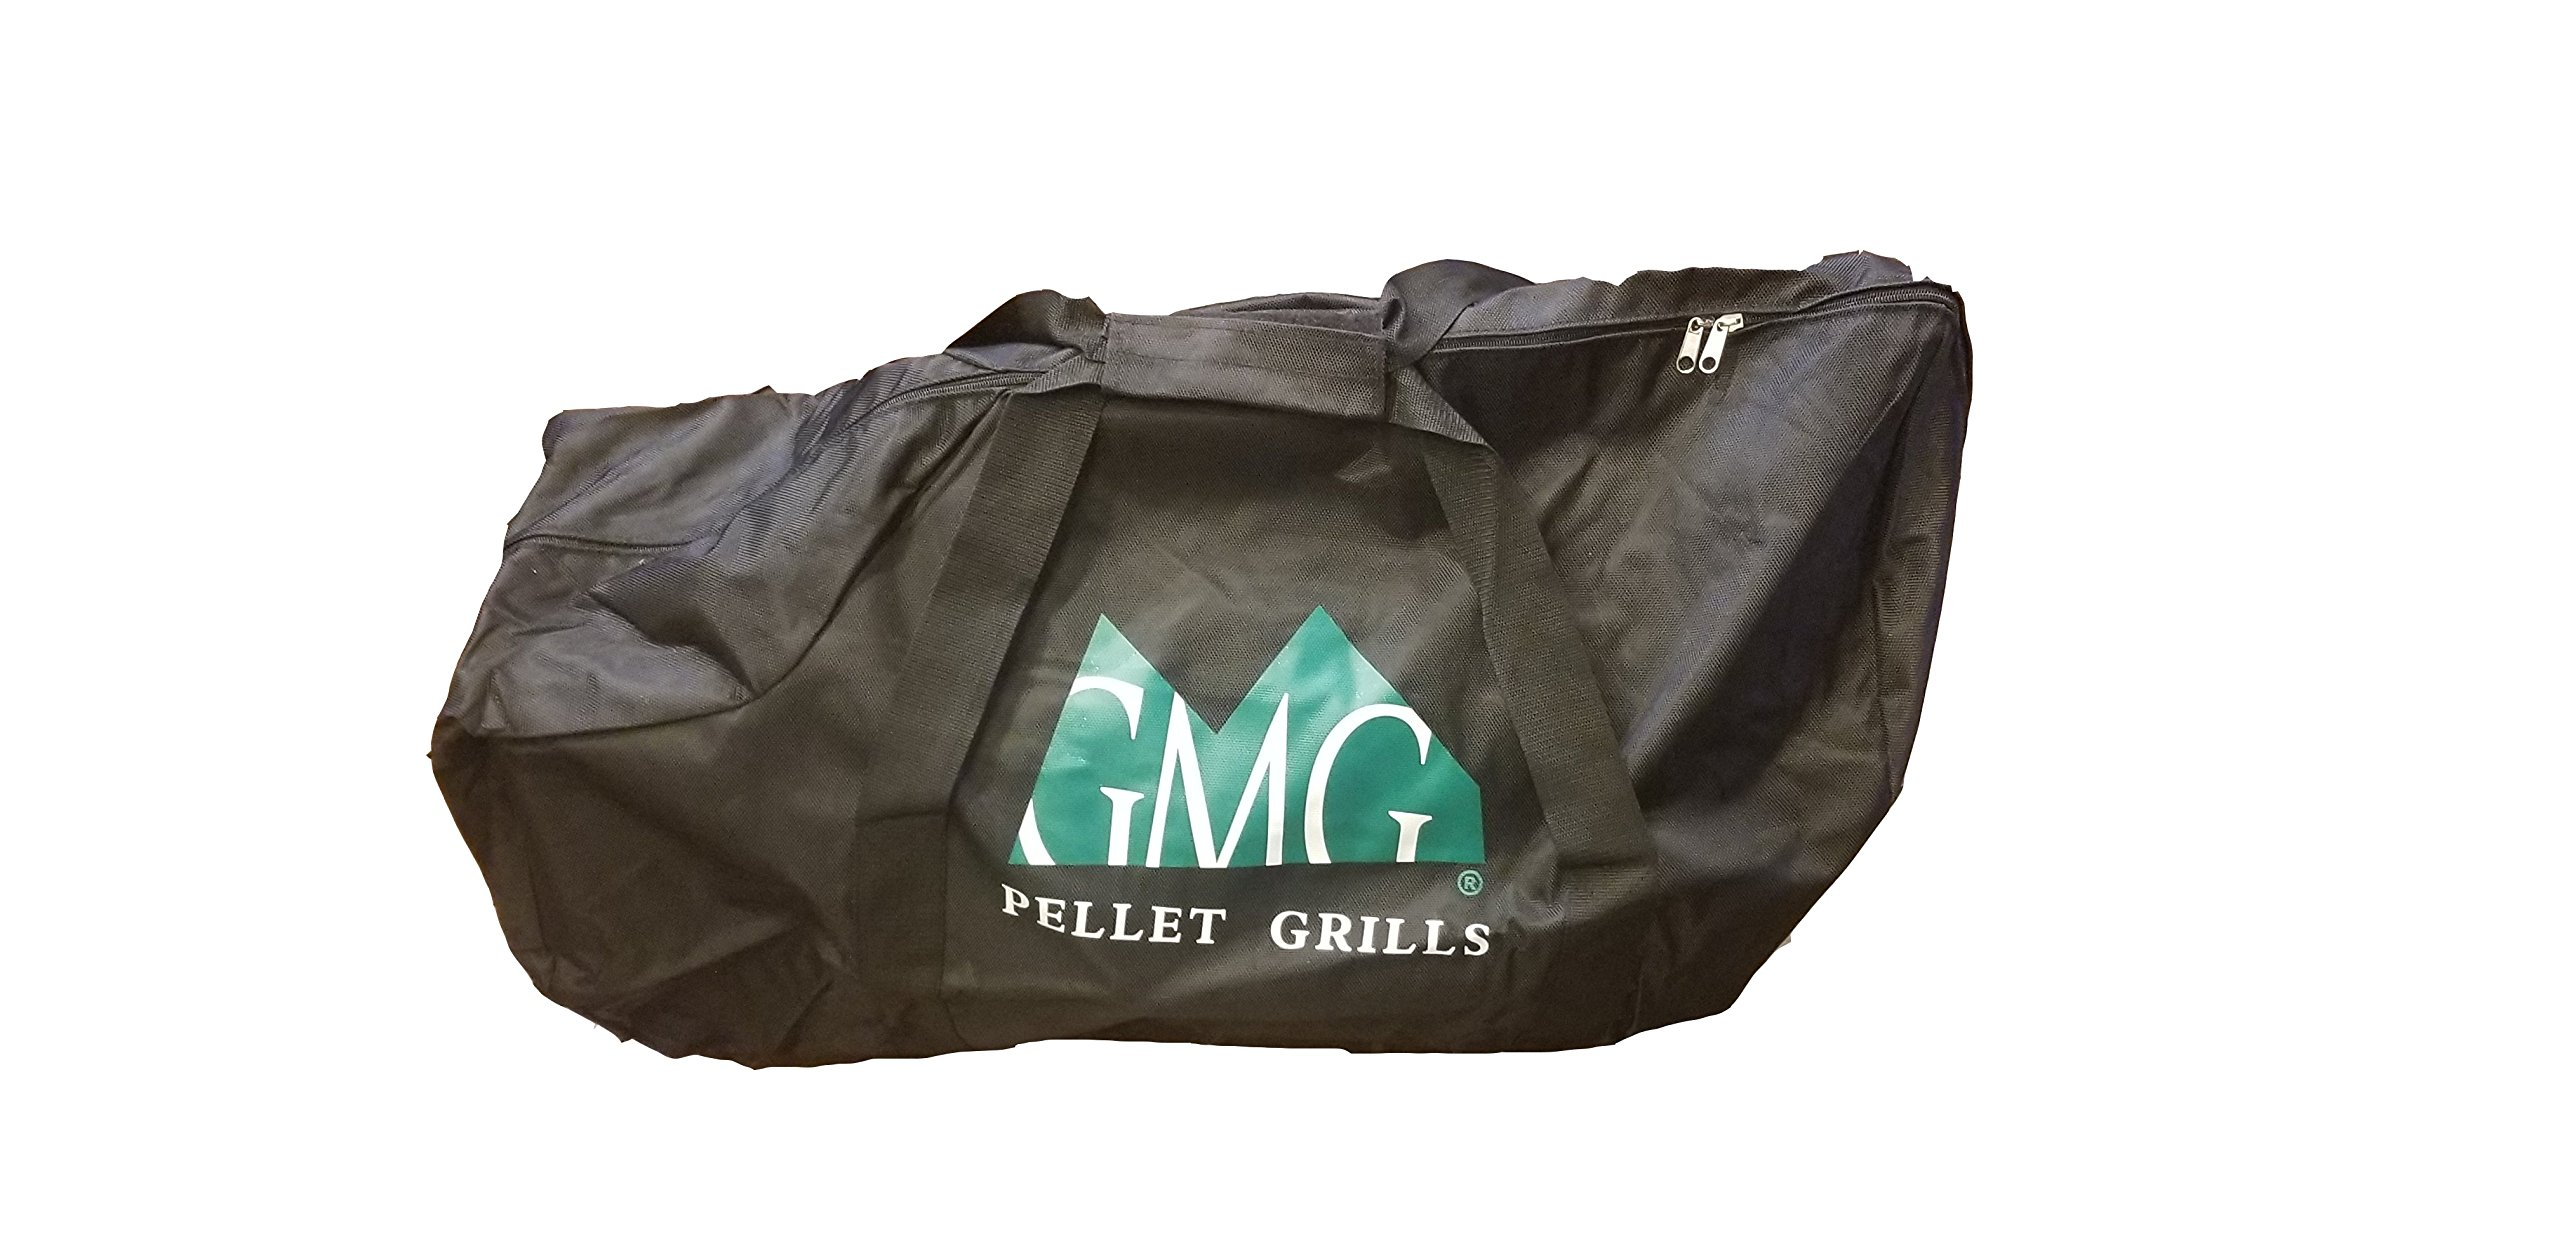 Pellethead GMG Davy Crockett Starter Package by Pellethead